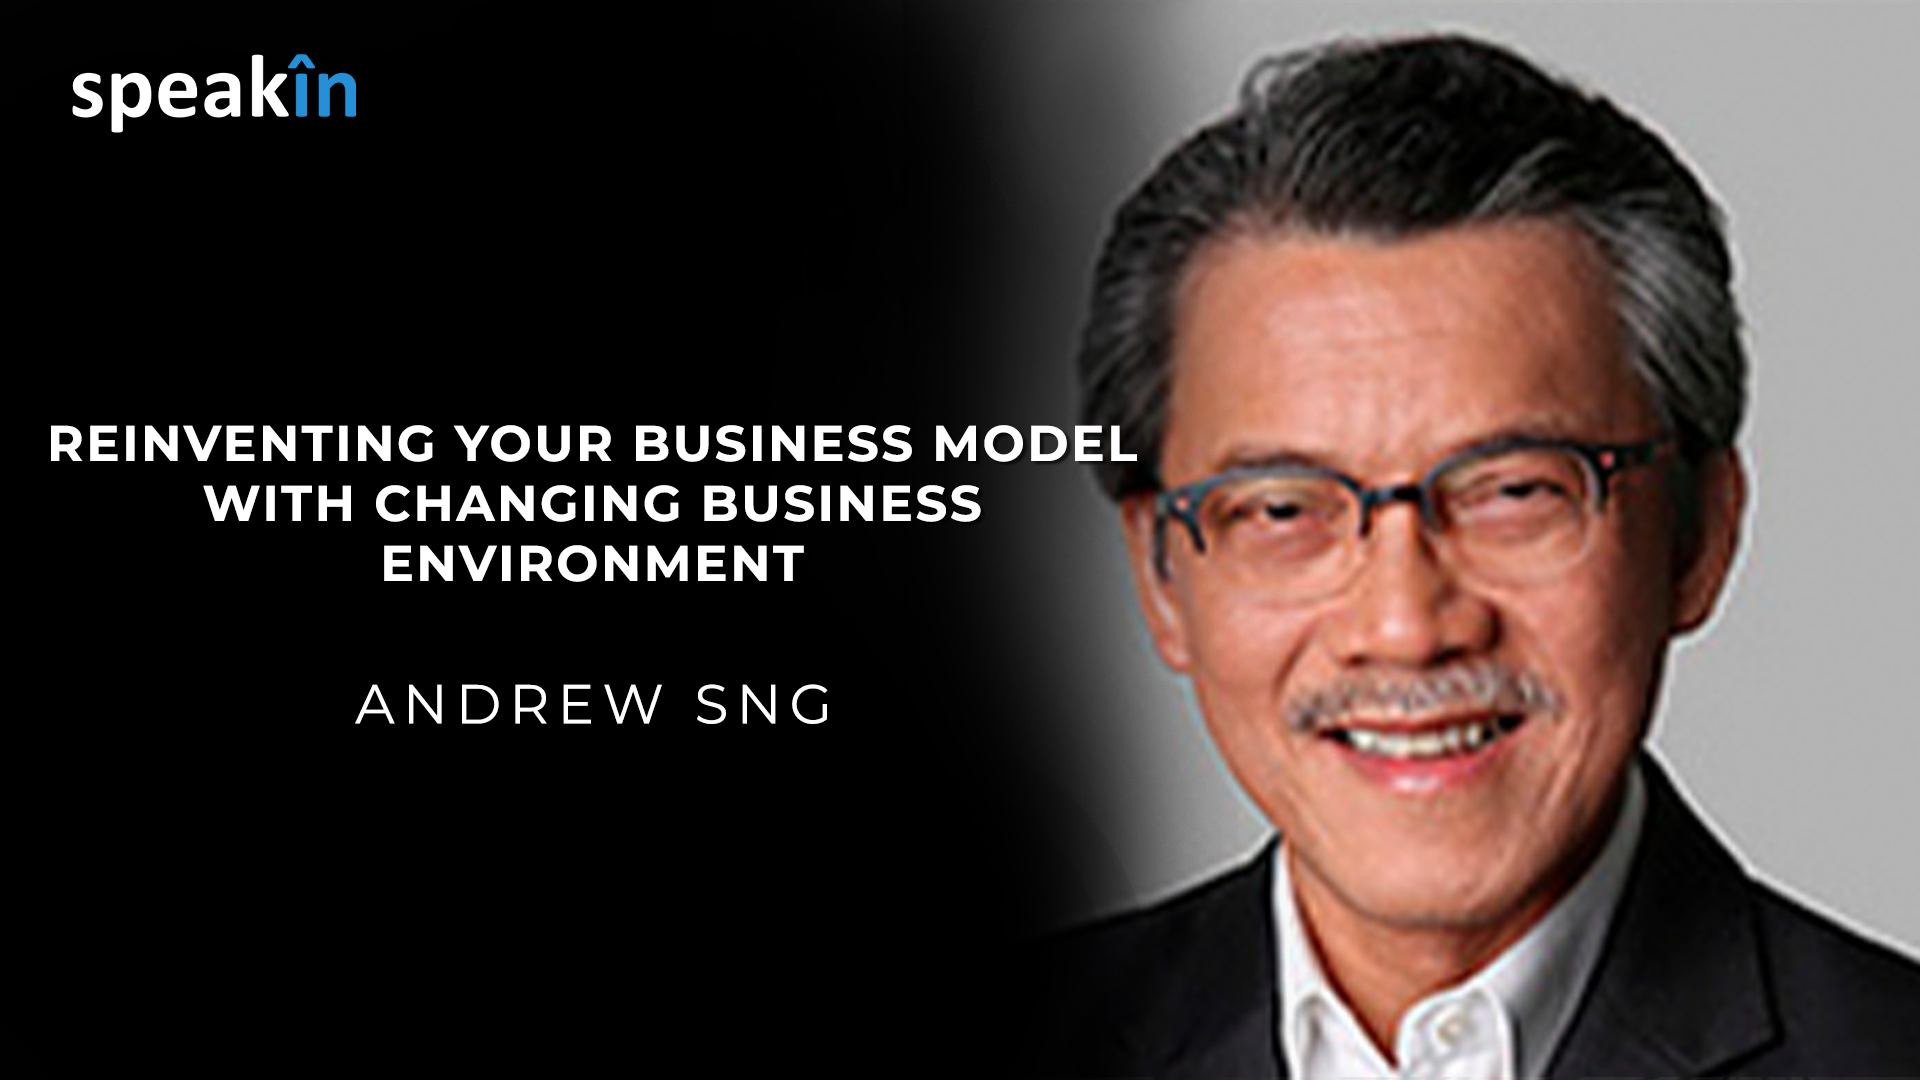 Reinventing your business model with changing business environment